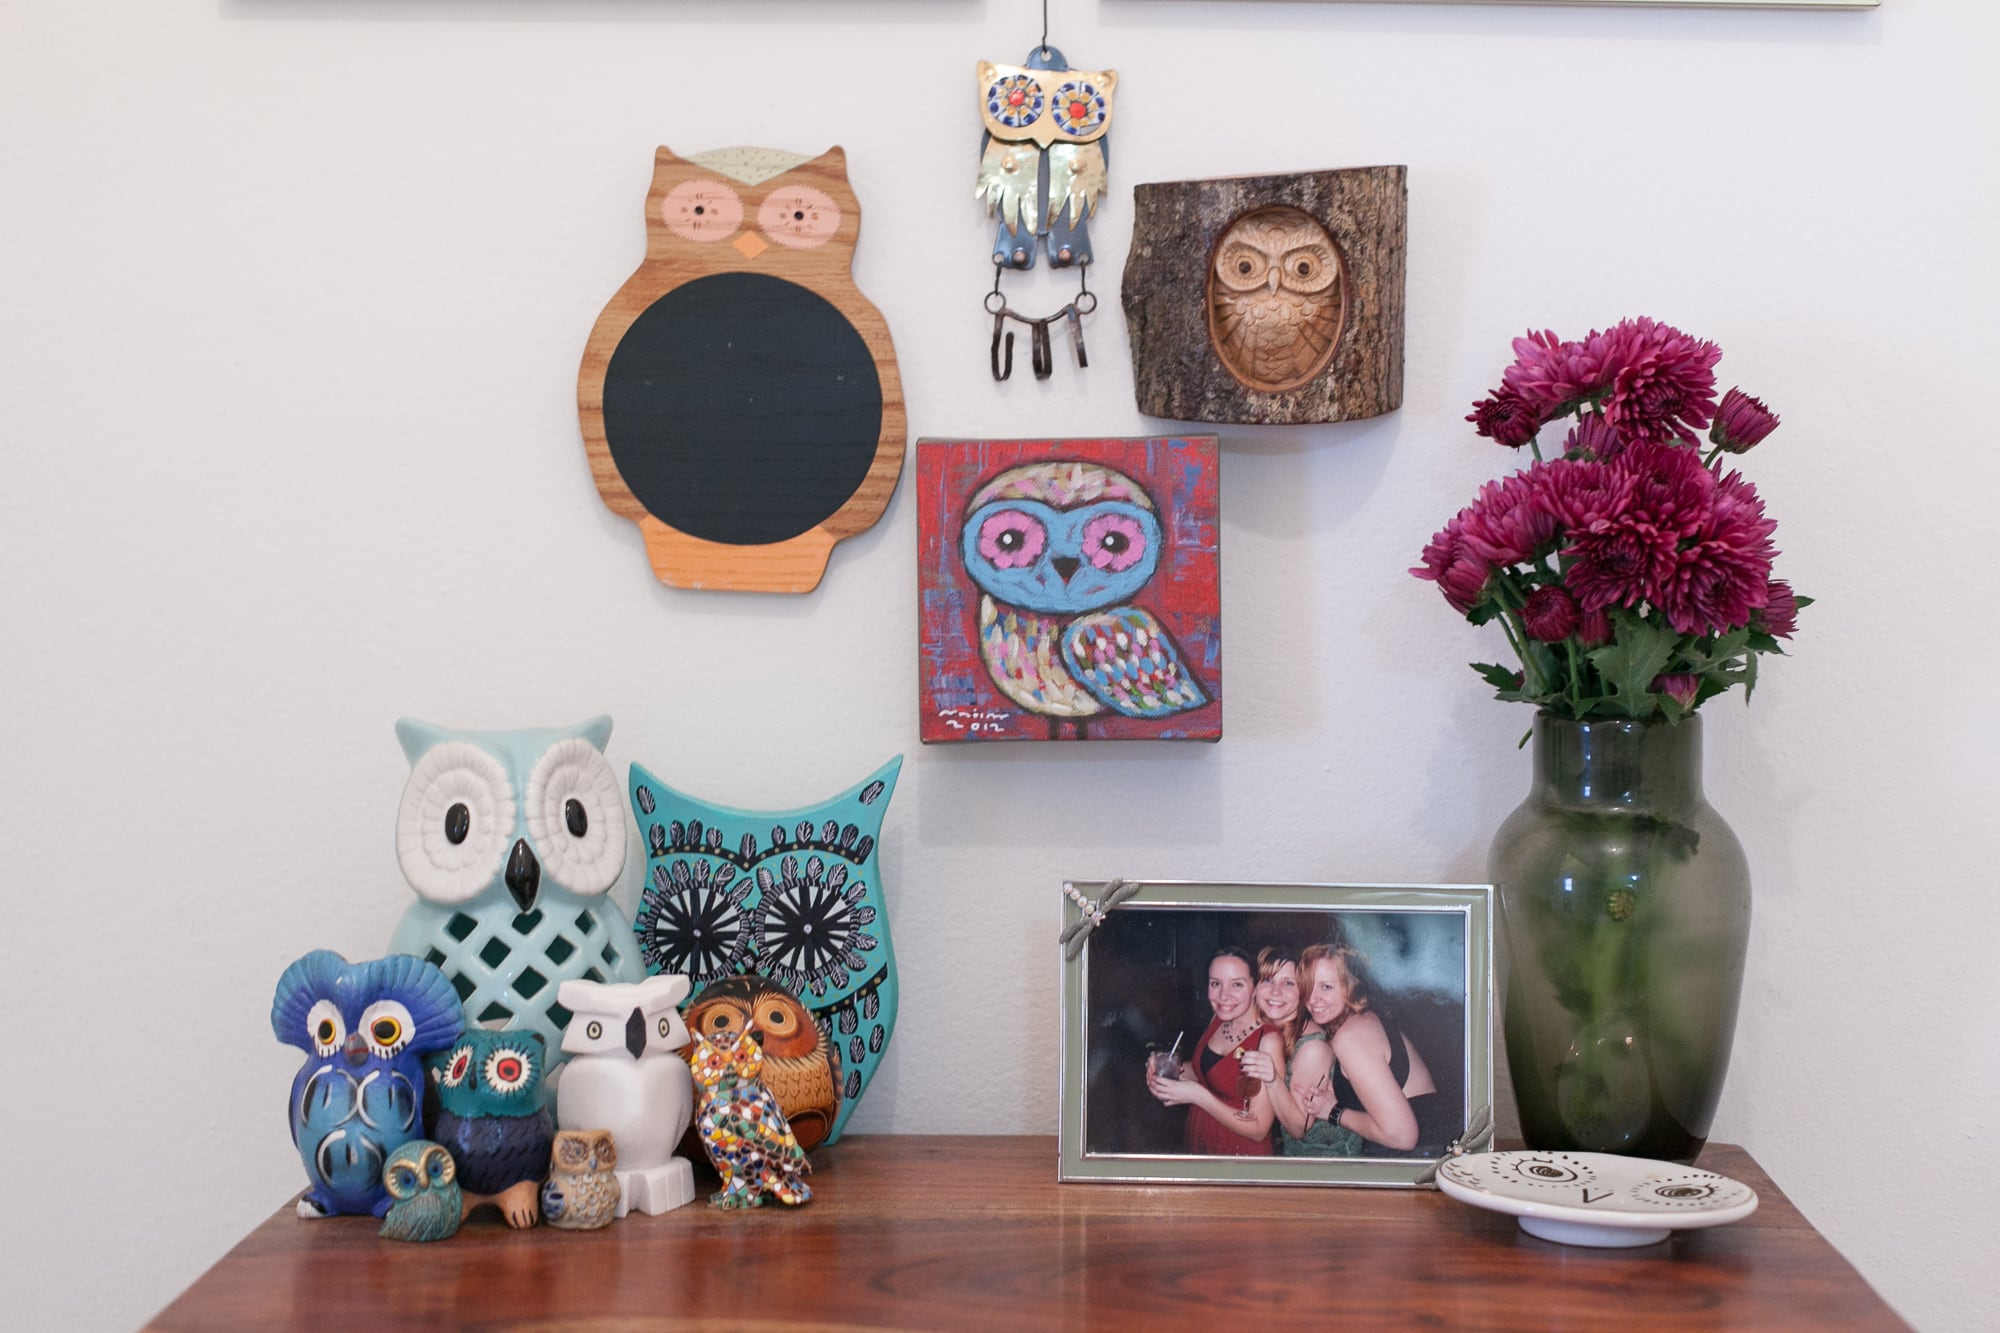 Collected: Owl Souvenirs from Around the World